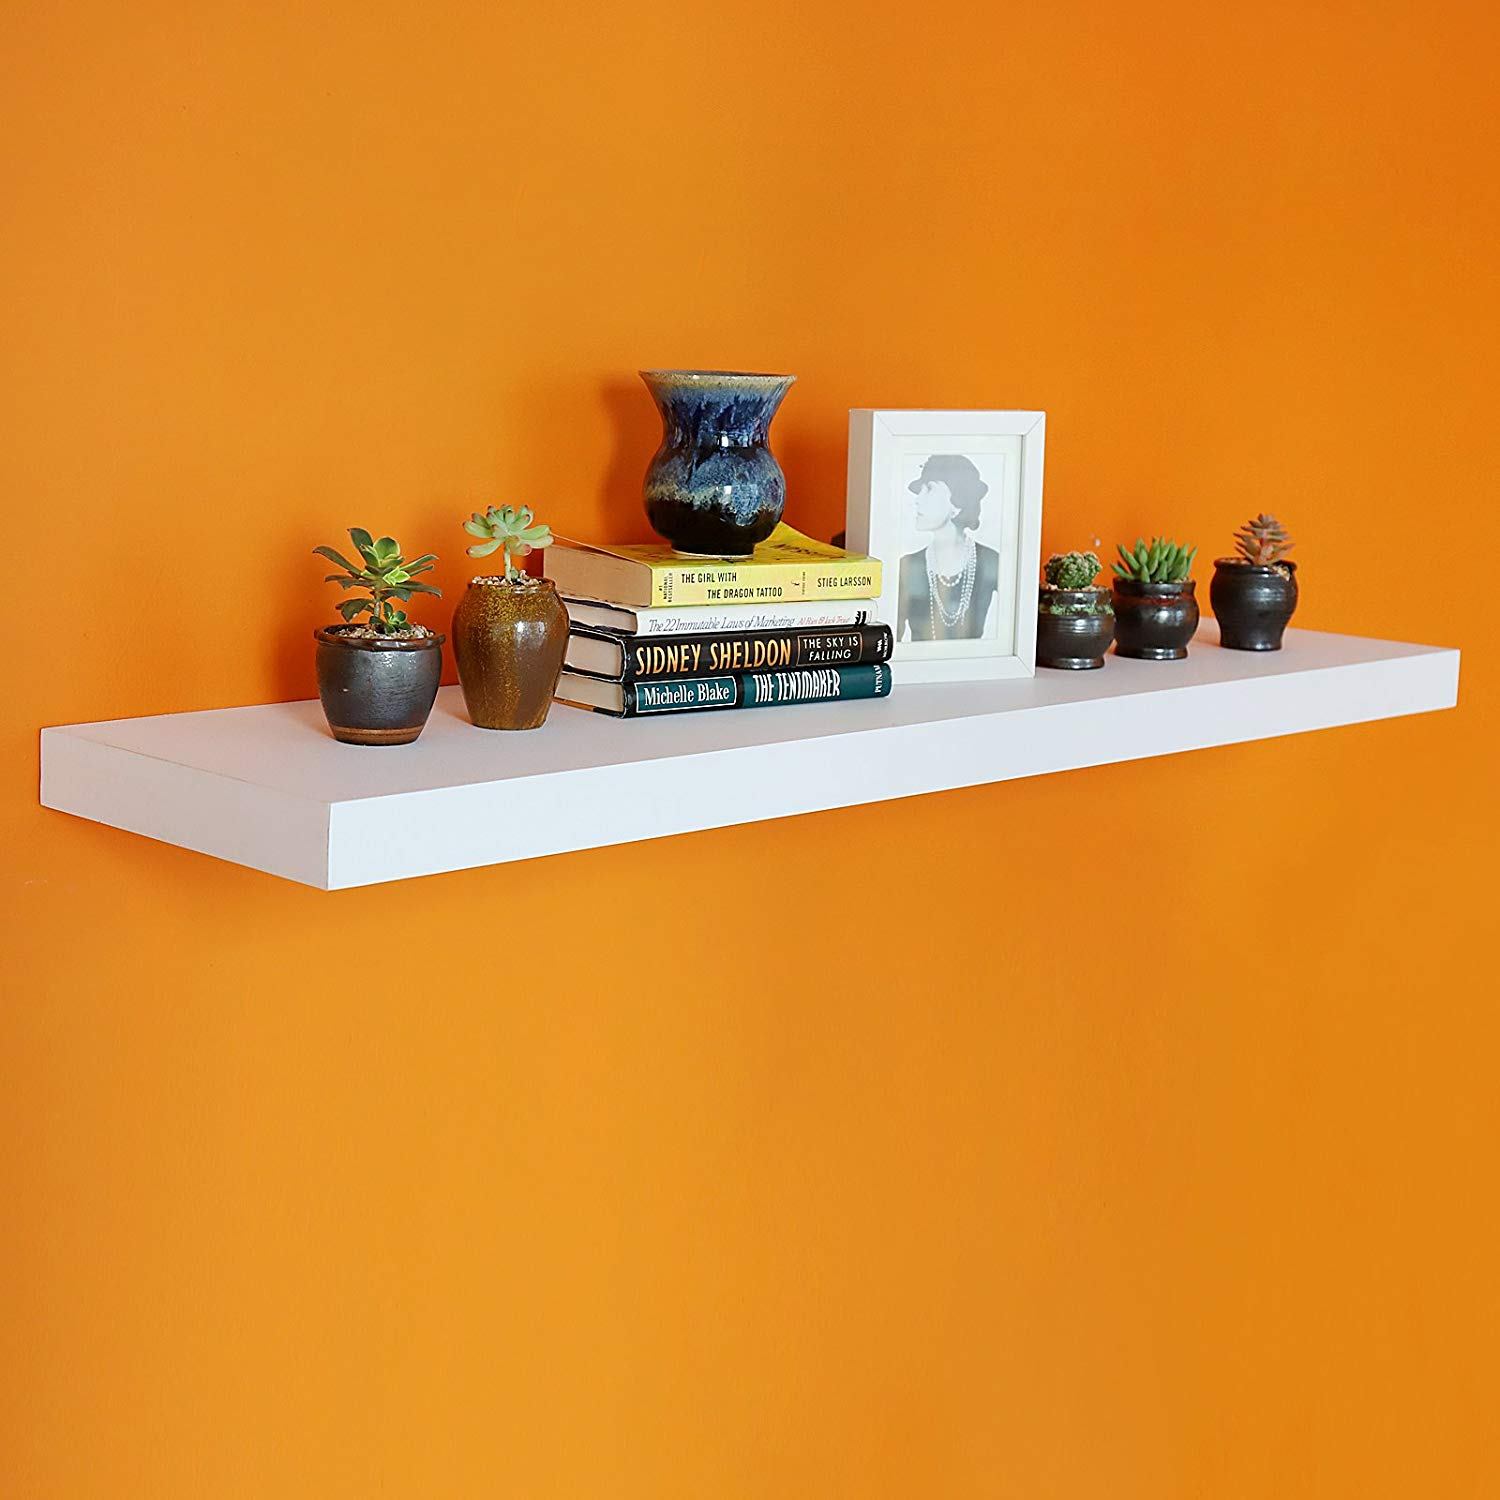 welland deep white floating shelves shelf wall display deeper than others component target closed storage corner hardware peel and stick tile concrete large reclaimed wood mounted